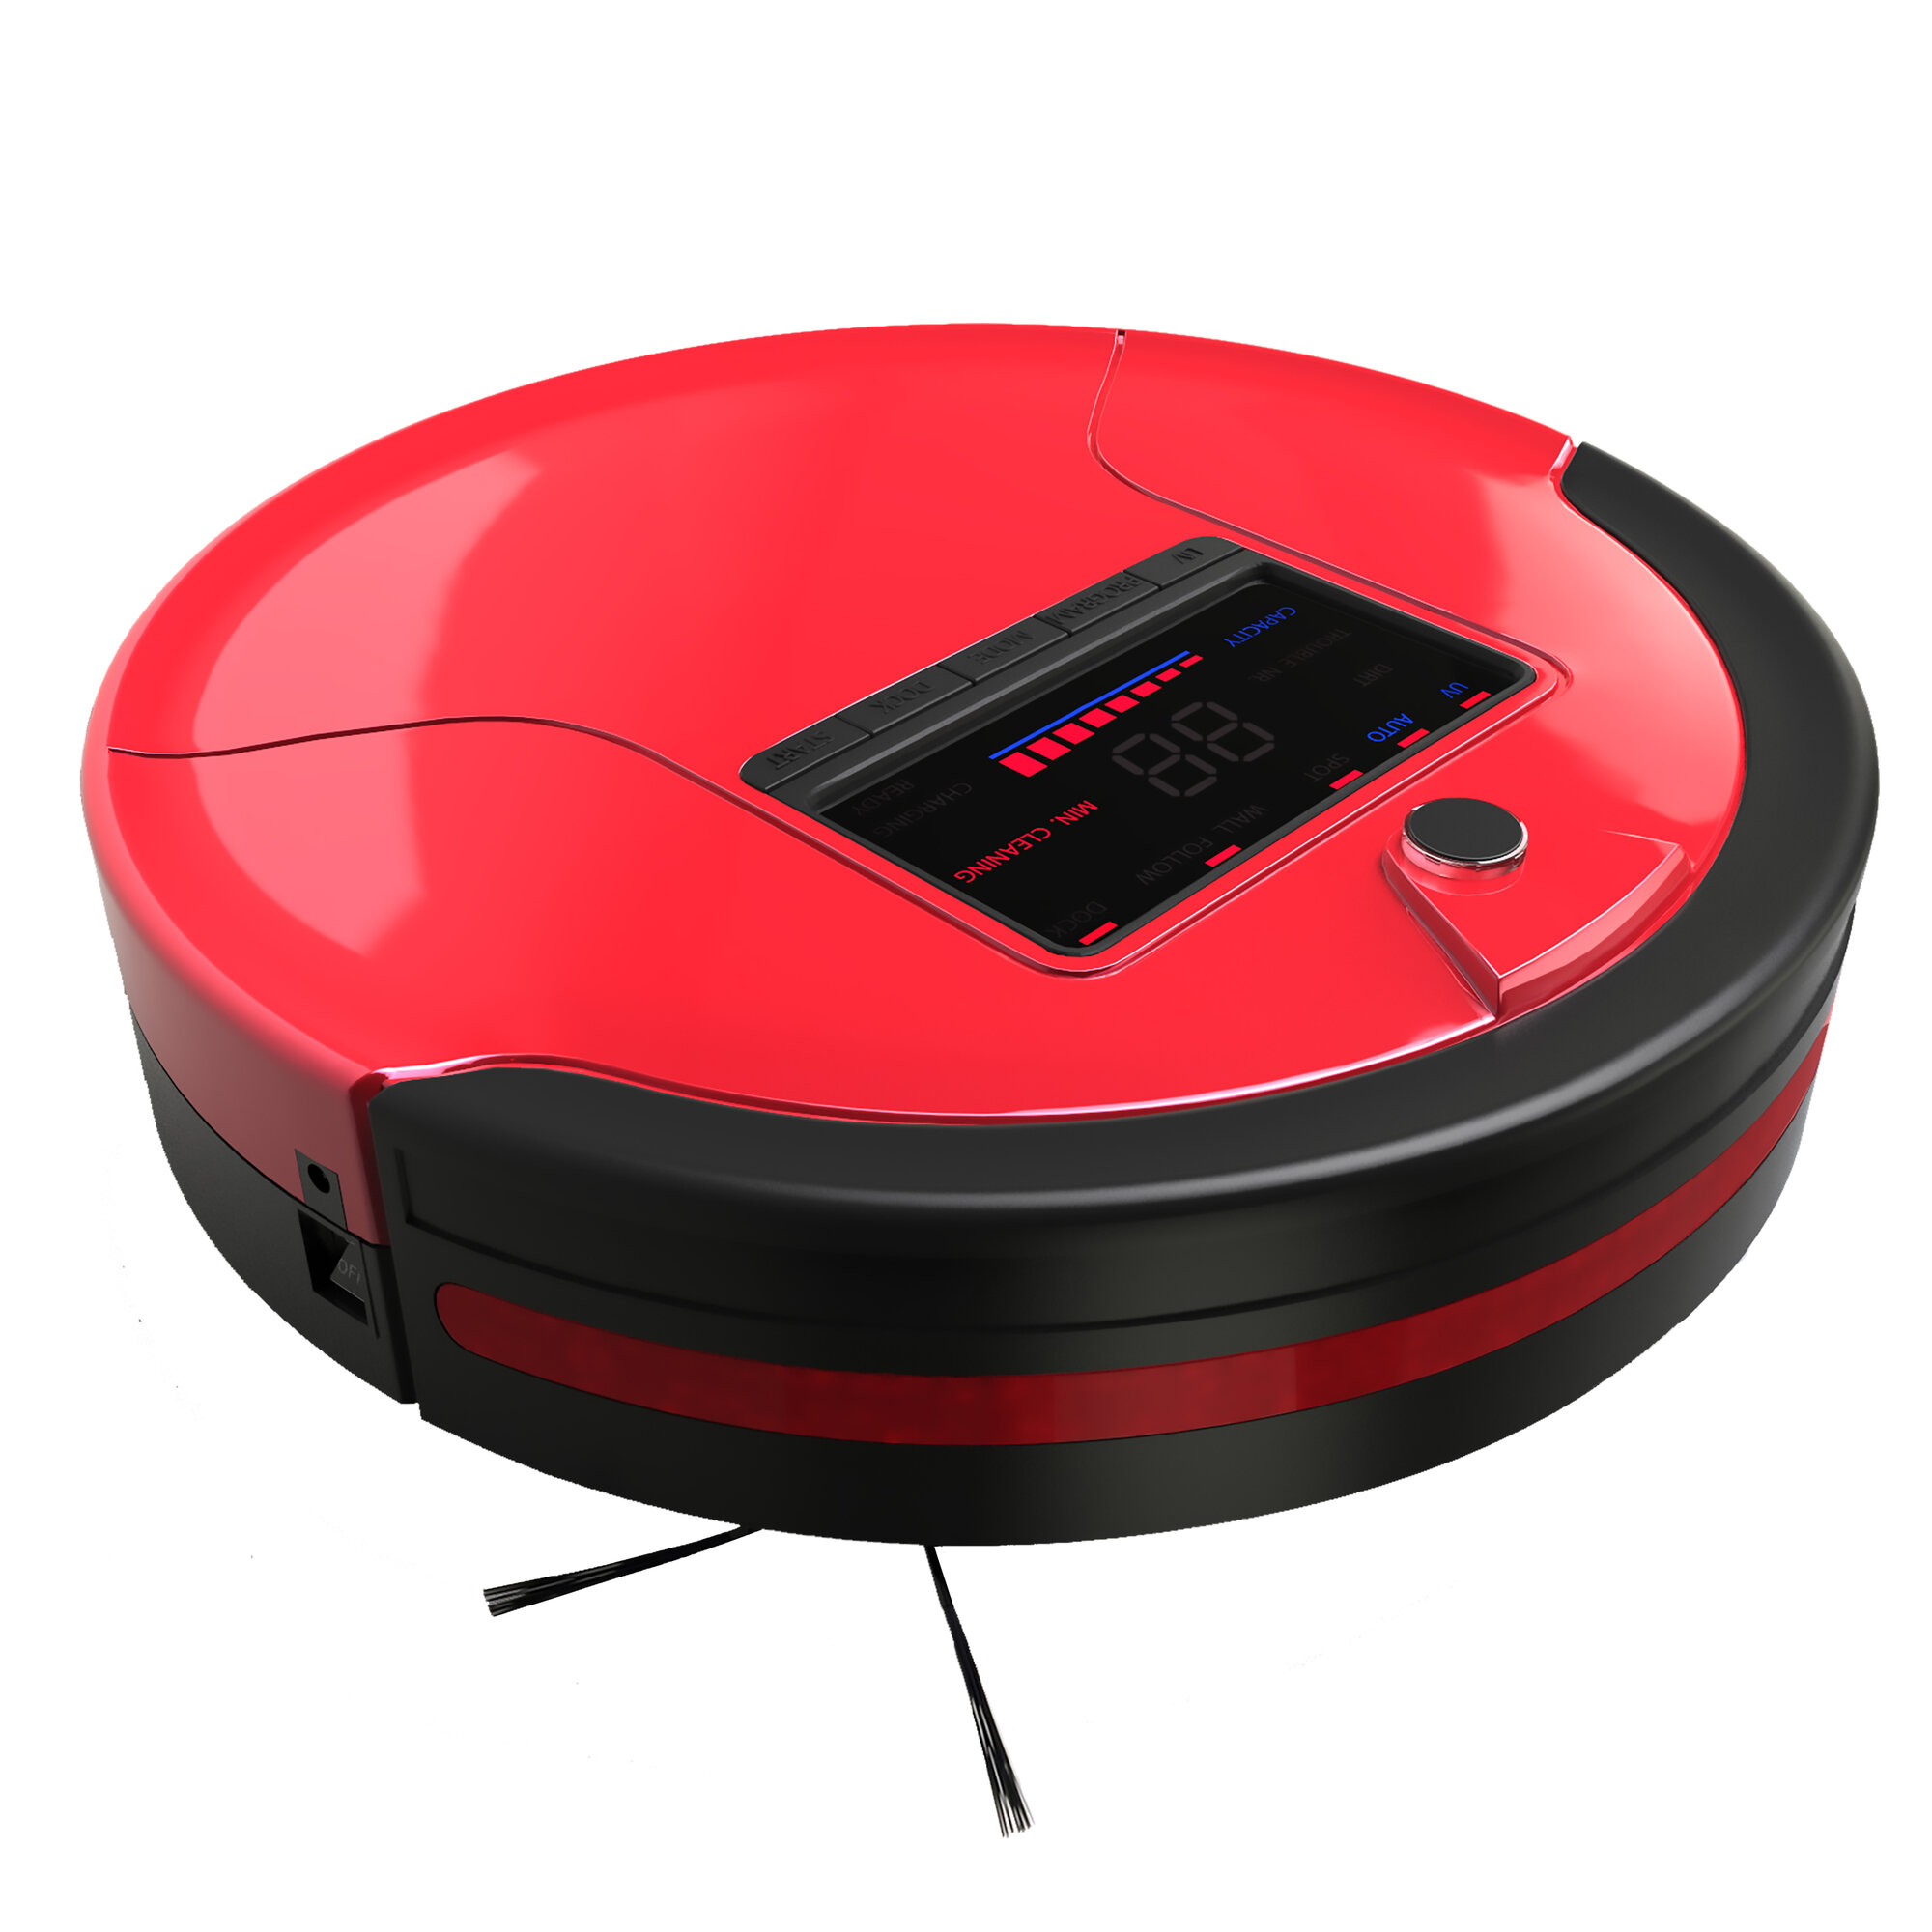 Bobsweep Pethair Robotic Vacuum Cleaner And Mop Rouge Ebay